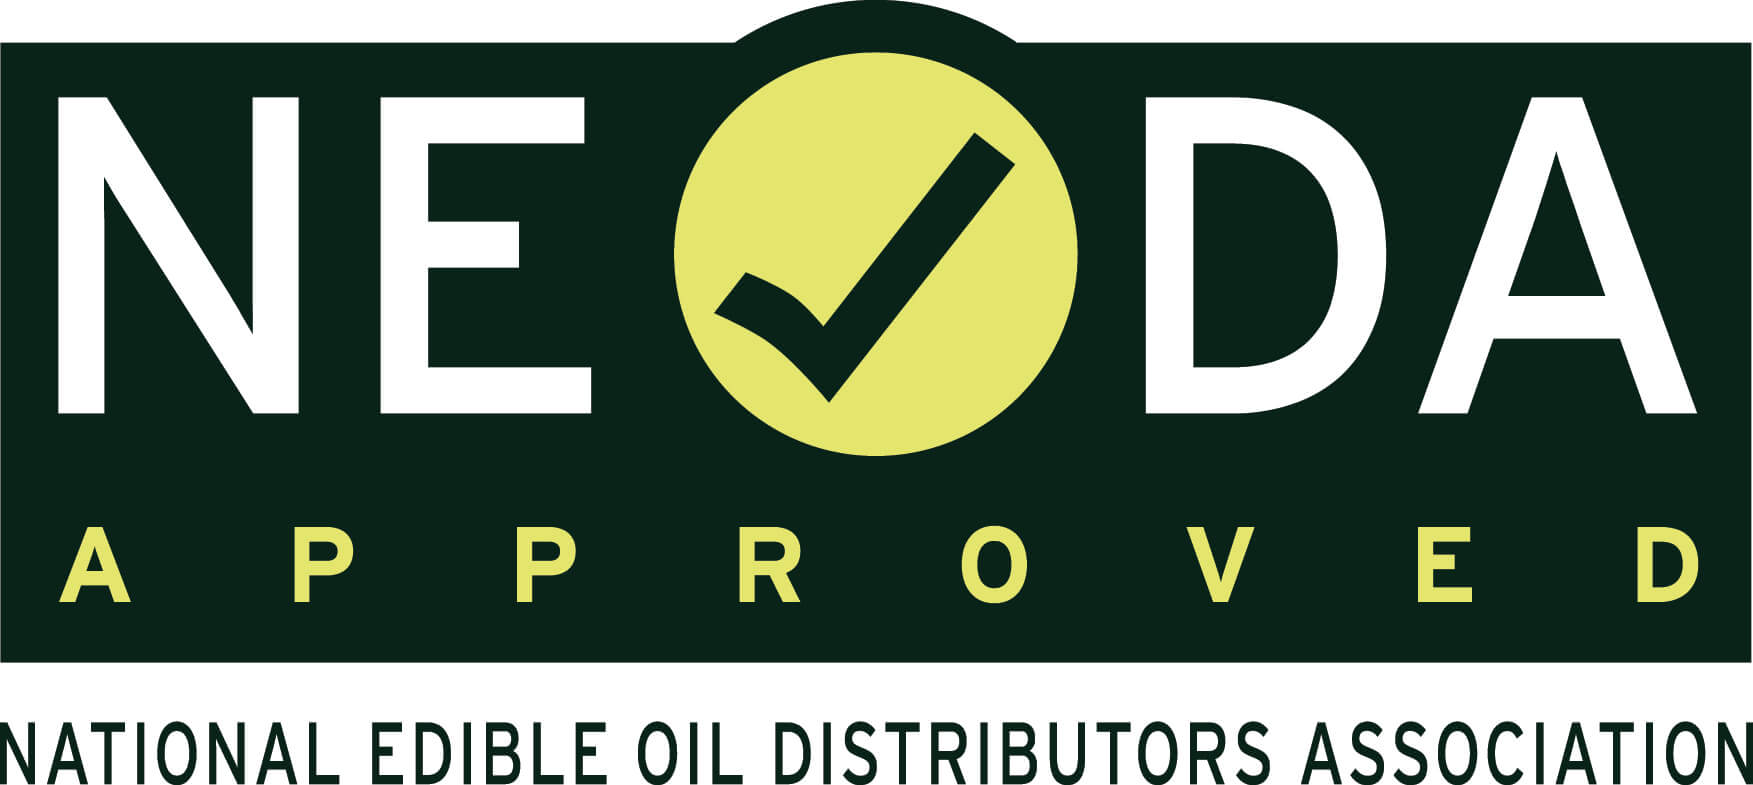 Approved by Neoda logo.